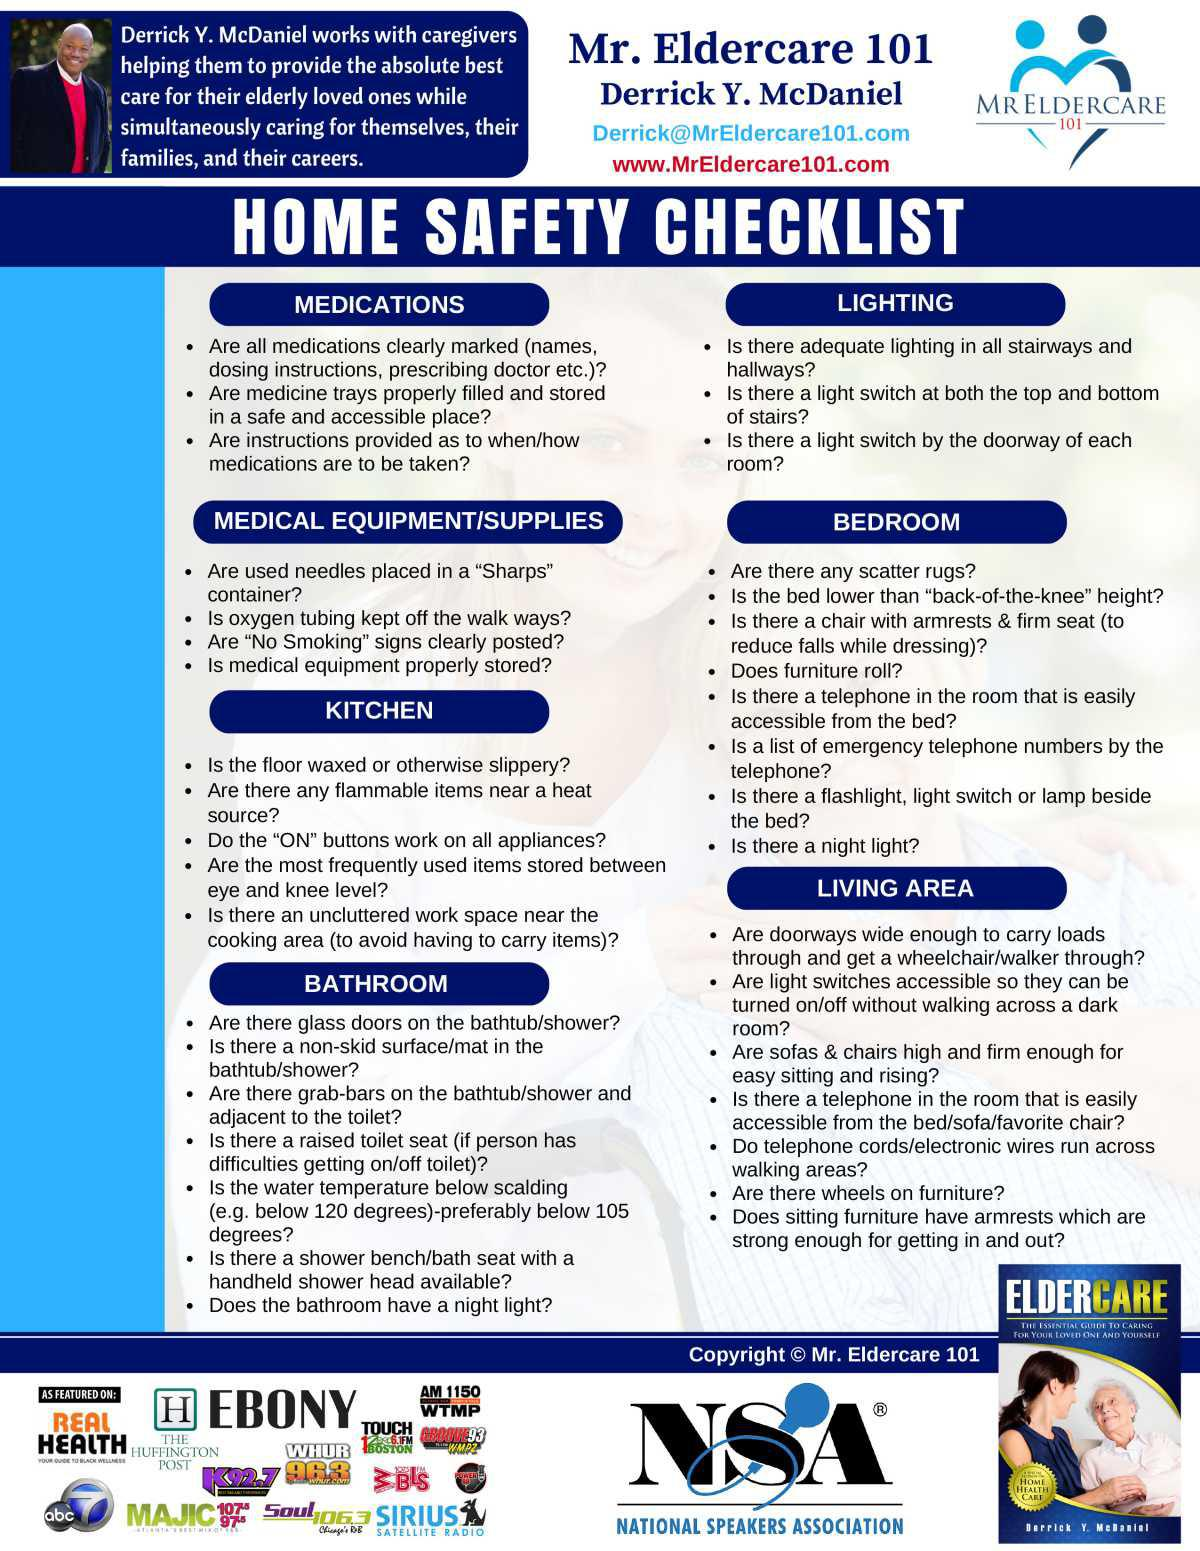 Home Safety Checklist - Back